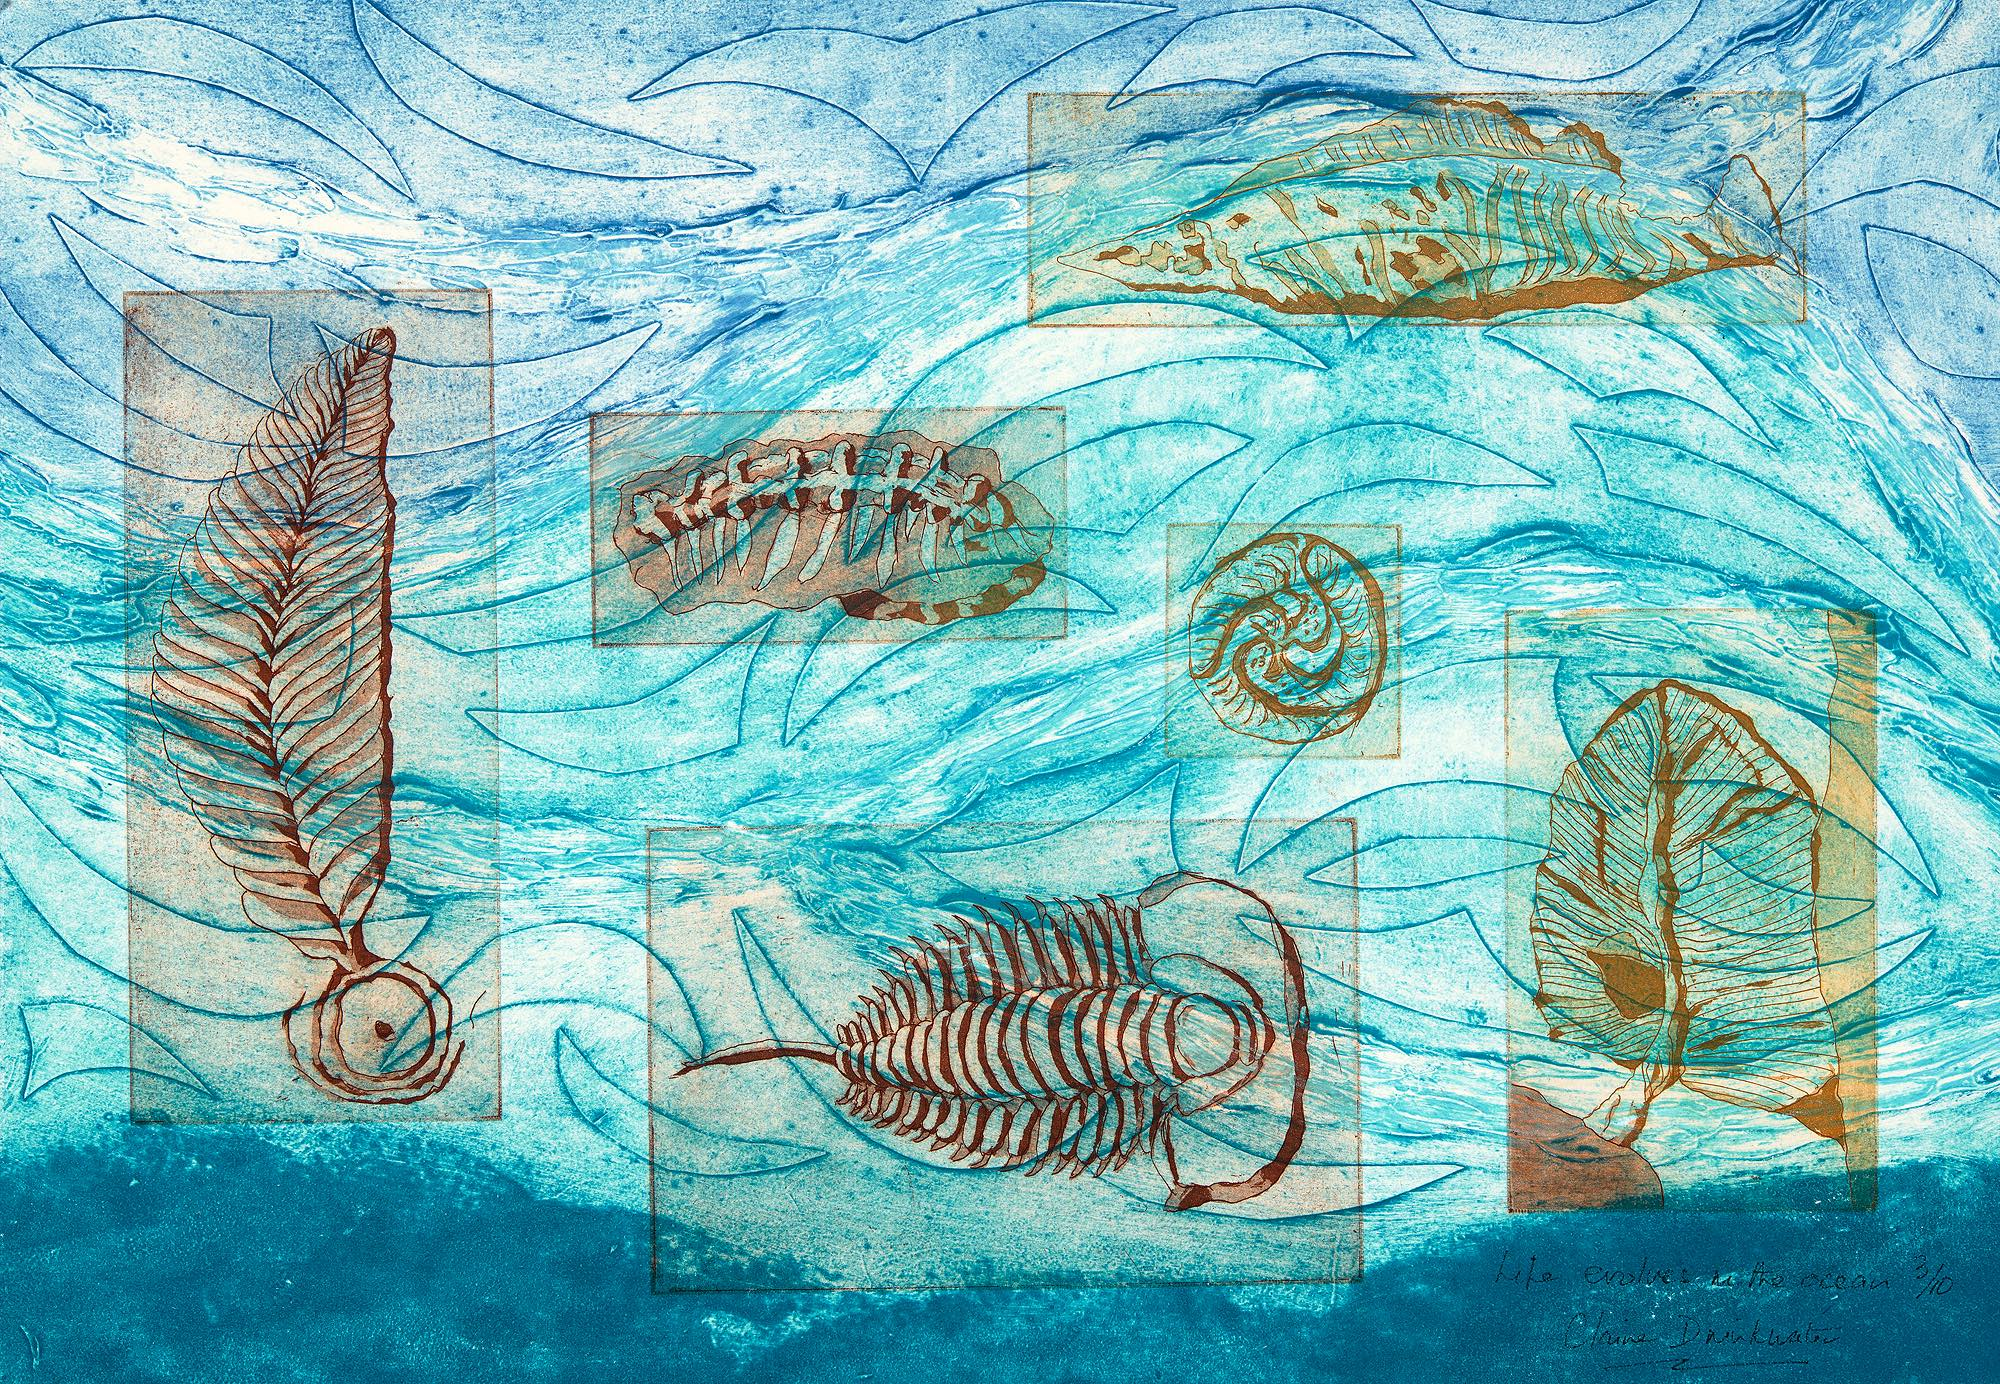 Life evolves in the ocean - Etching and collagraph